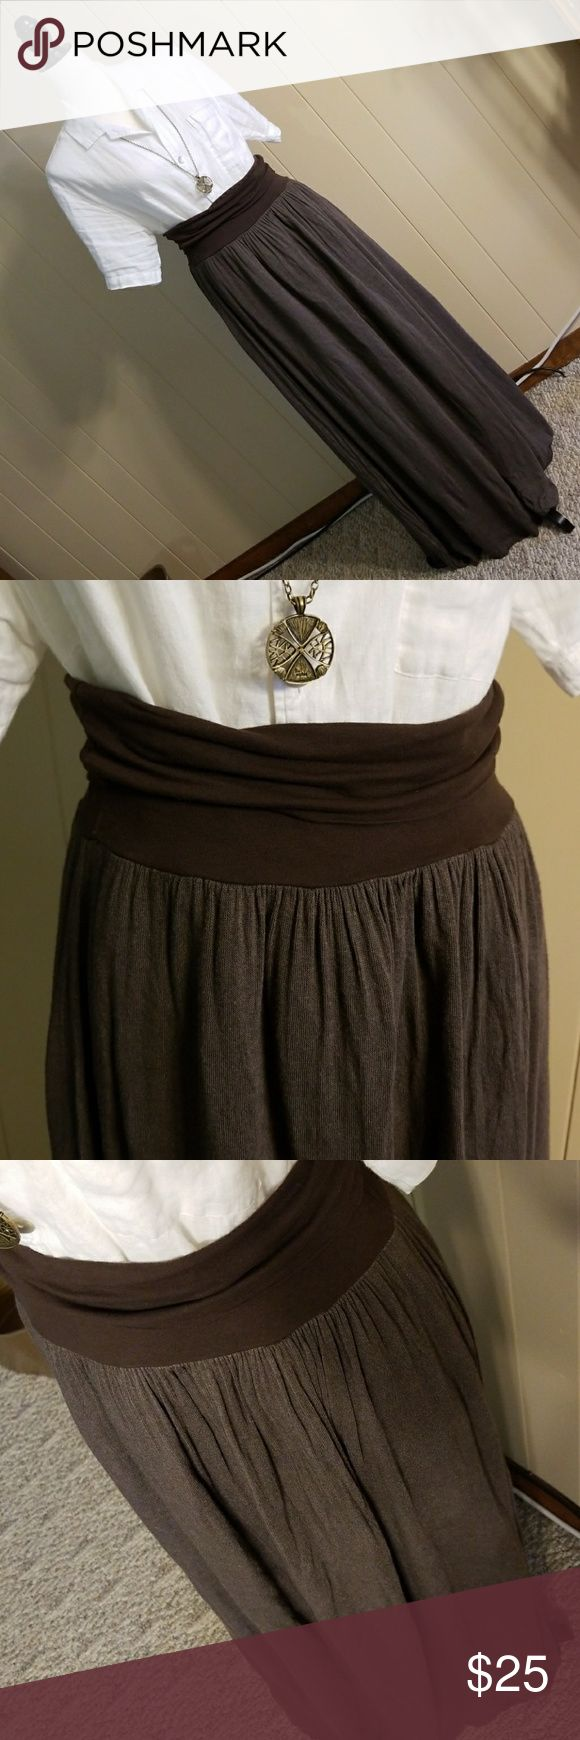 "NWT Tempo Medium long chocolate brown skirt Soft and flowy, chocolate brown with an underskirt. Size medium. Bought for a wedding, but ended up wearing something else! Stretch elastic waist band that is a total of 7"" in length and can stretch from 30"" to 36"" measurements are approximate Tempo Paris Skirts Maxi"